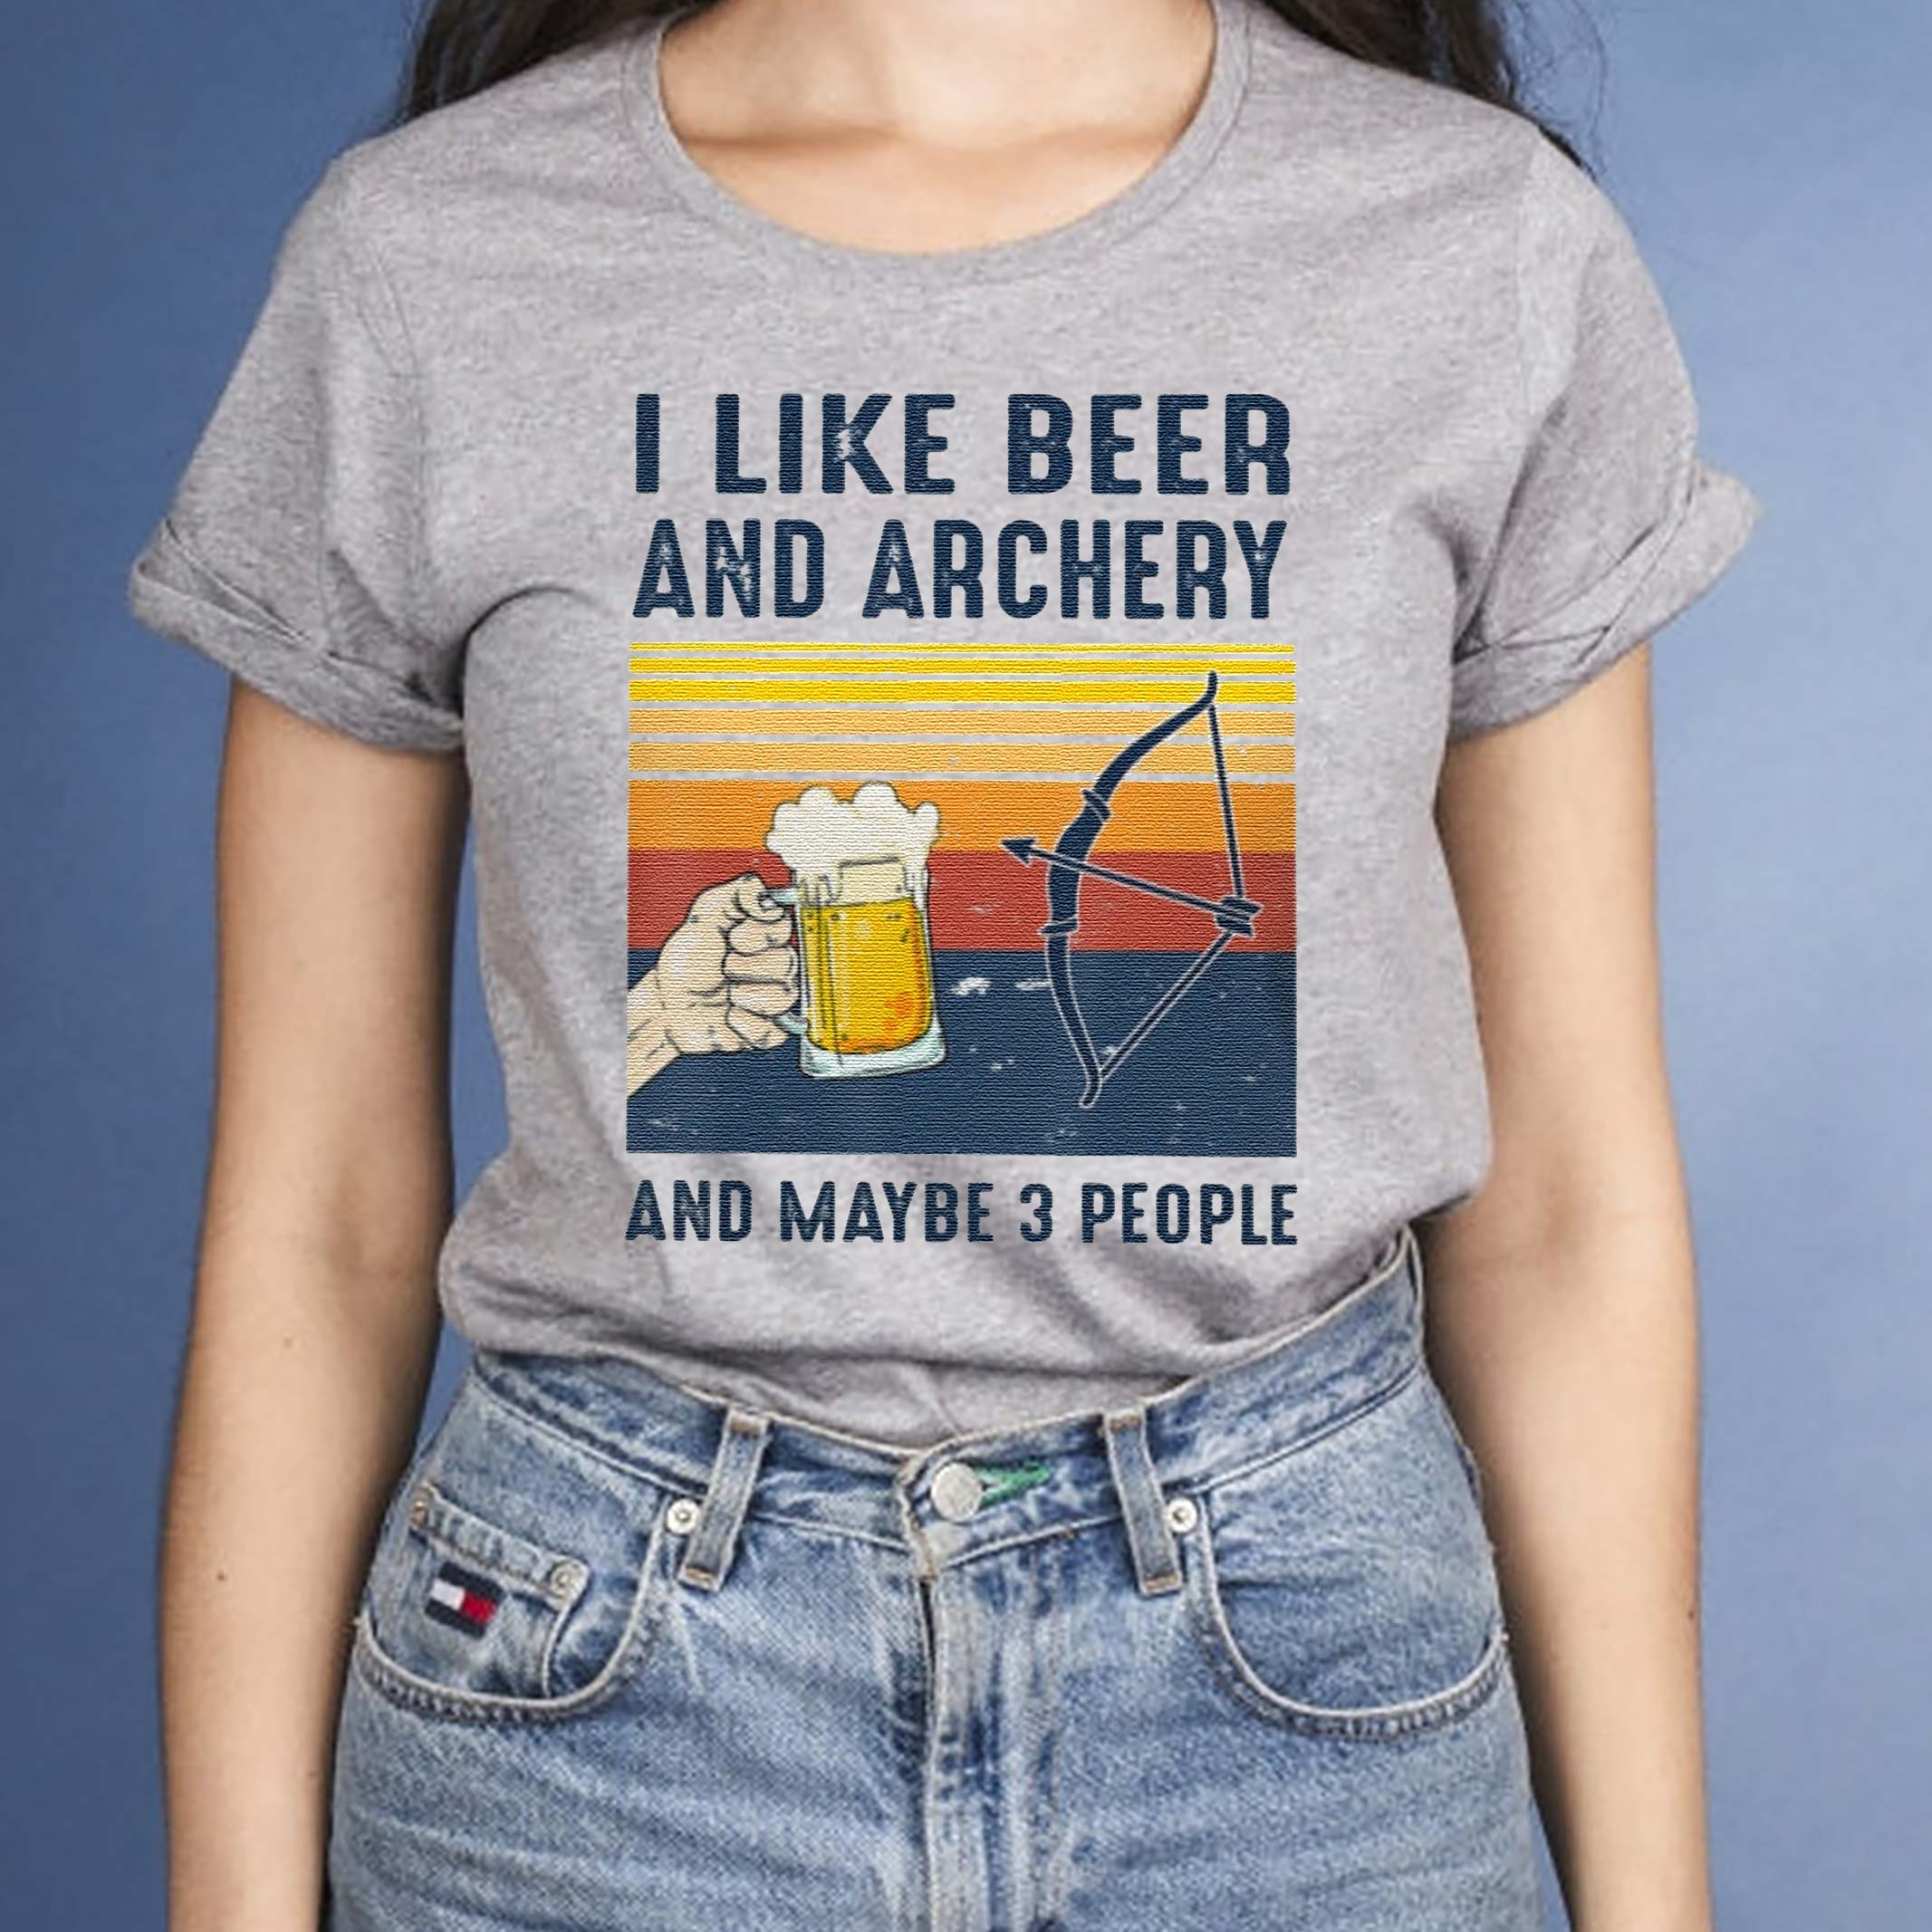 I-like-Beer-Archery-maybe-3-people-Shirts